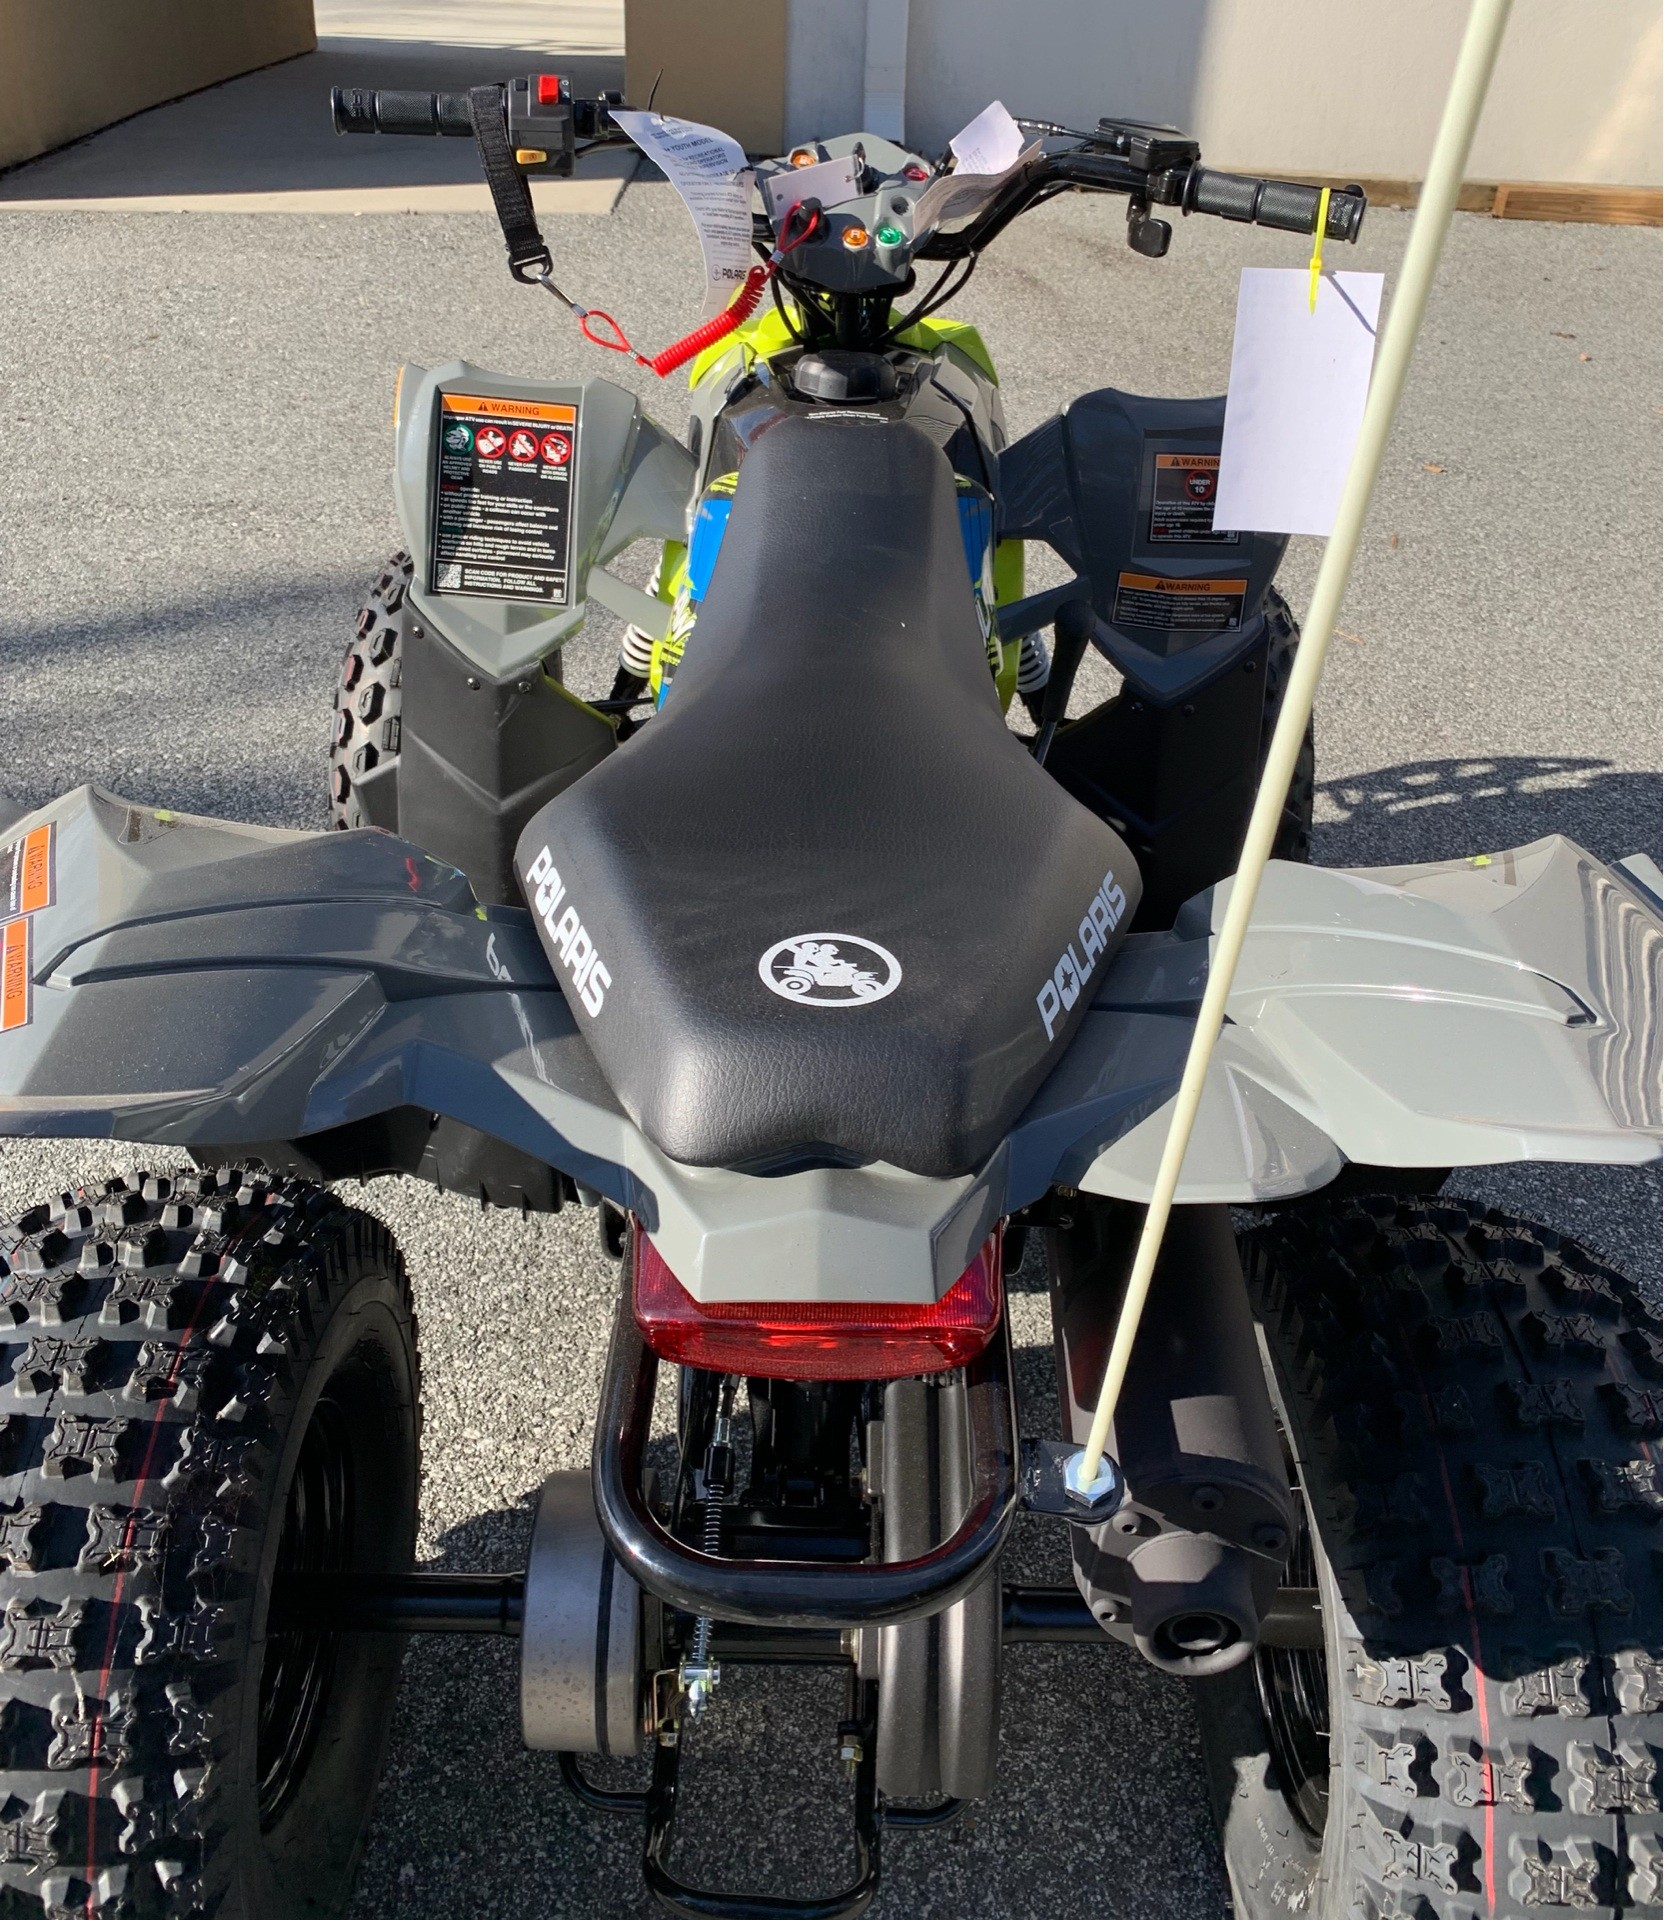 2019 Polaris Outlaw 110 in High Point, North Carolina - Photo 9